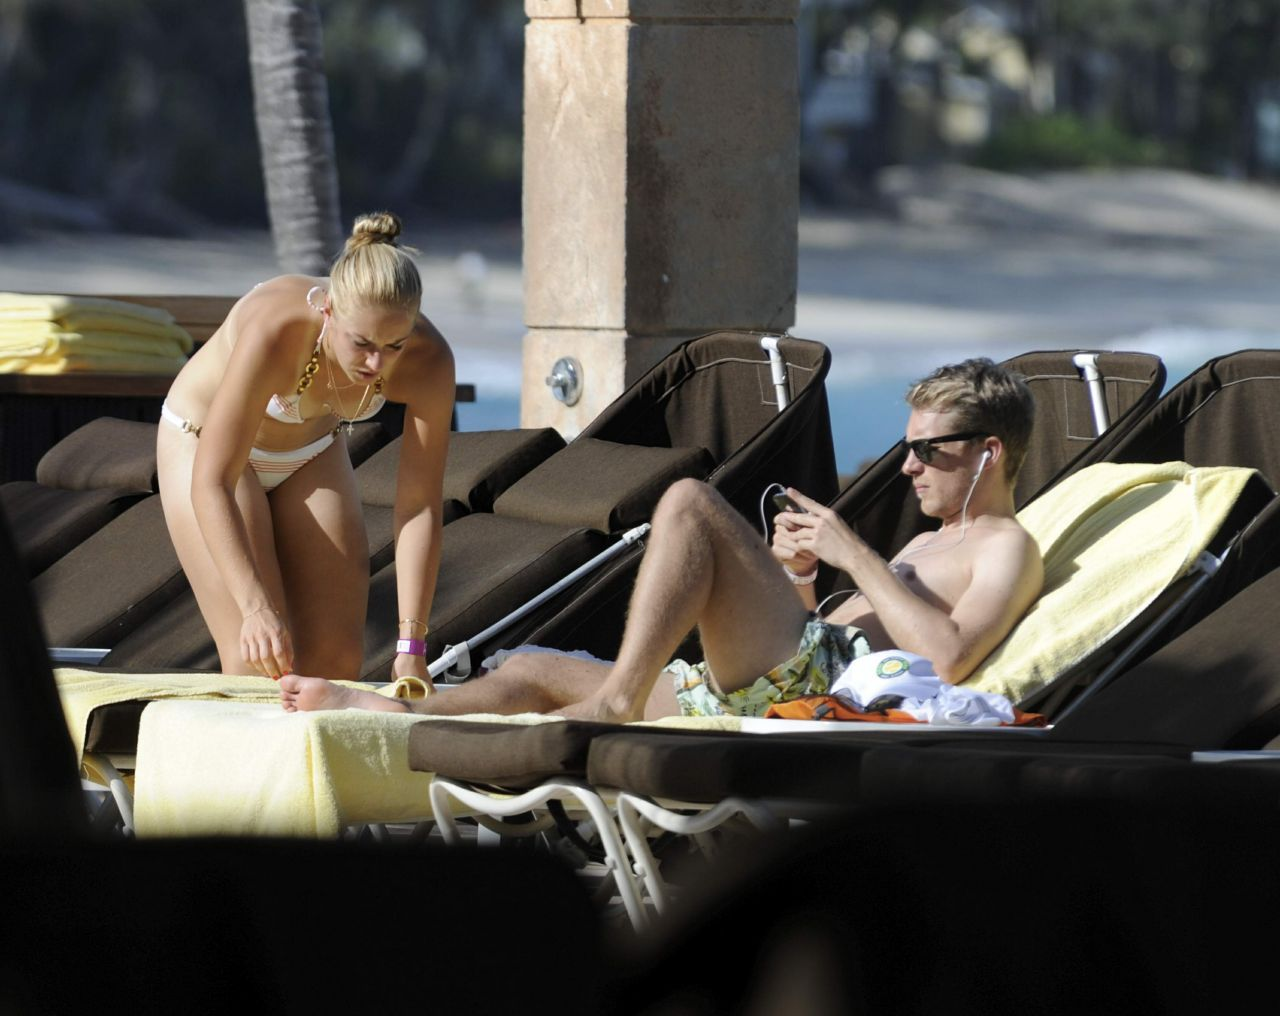 Sabine Lisicki in a Bikini at the pool in Bahamas - November 2013